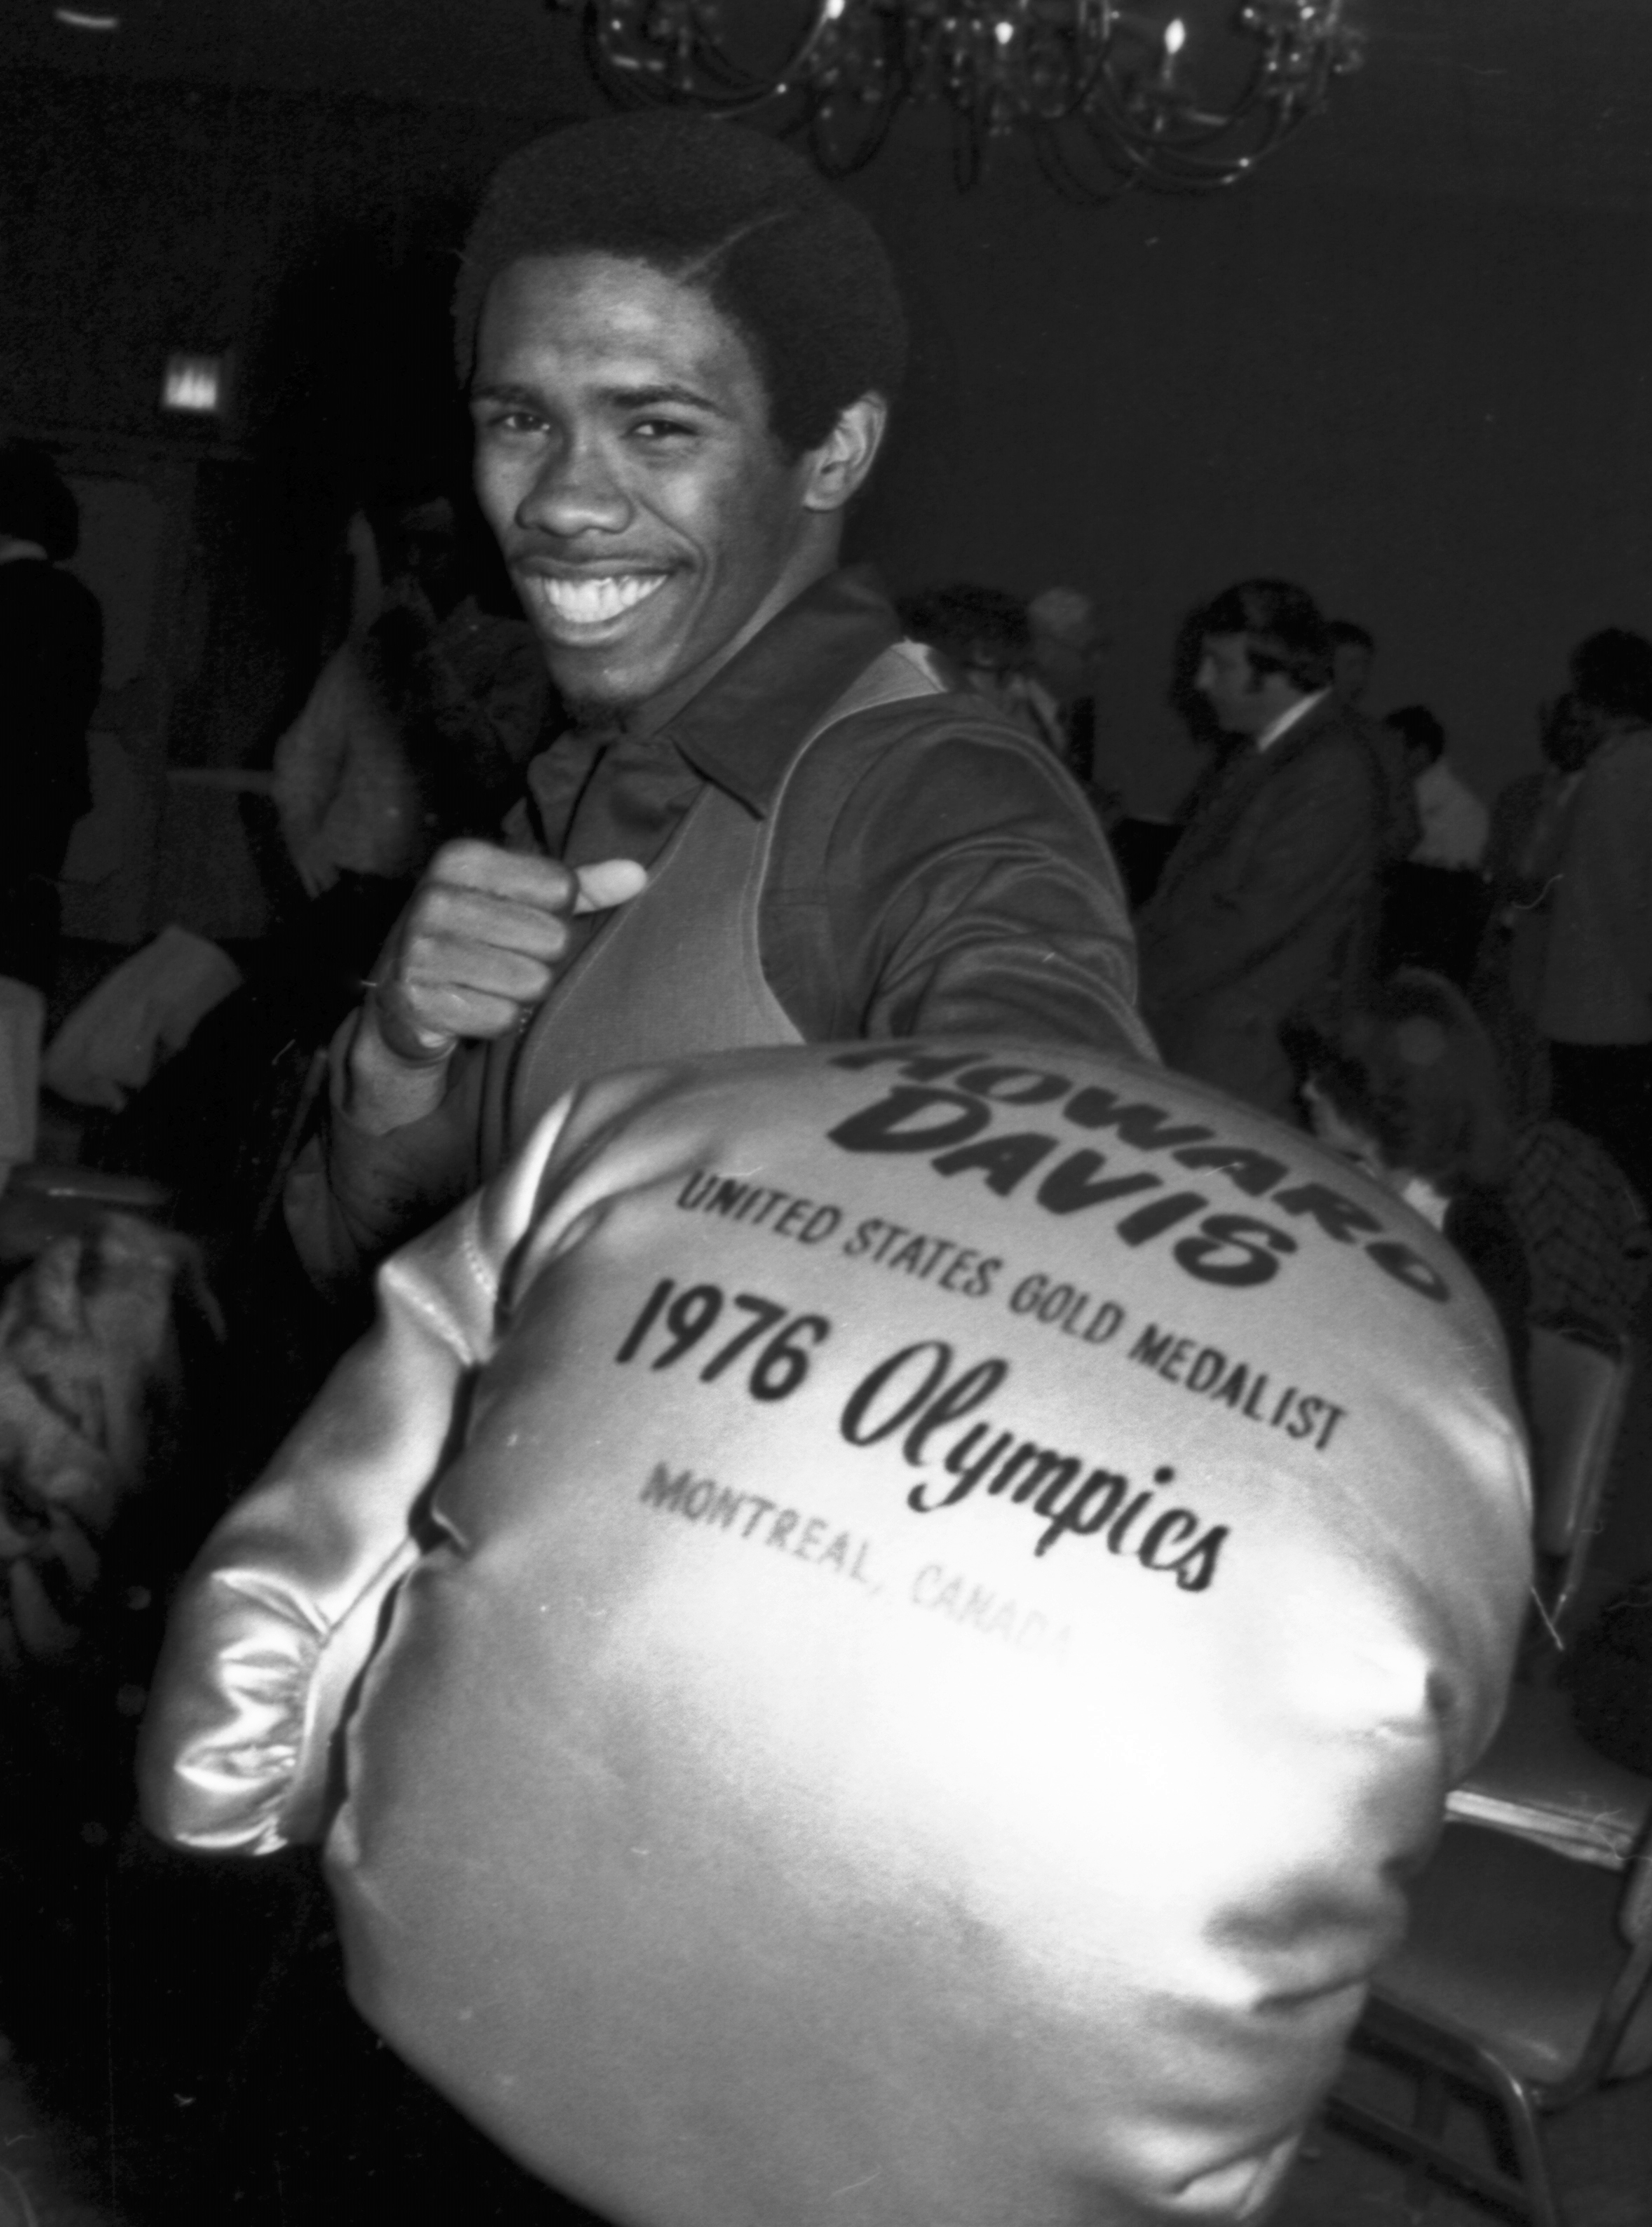 FILE - In this Dec. 17, 1976, file photo, Howard Davis, the Olympic gold medal winner in the lightweight boxing division, poses for photographers at a press conference in New York, where he announced that he was turning professional. The former Olympic ch